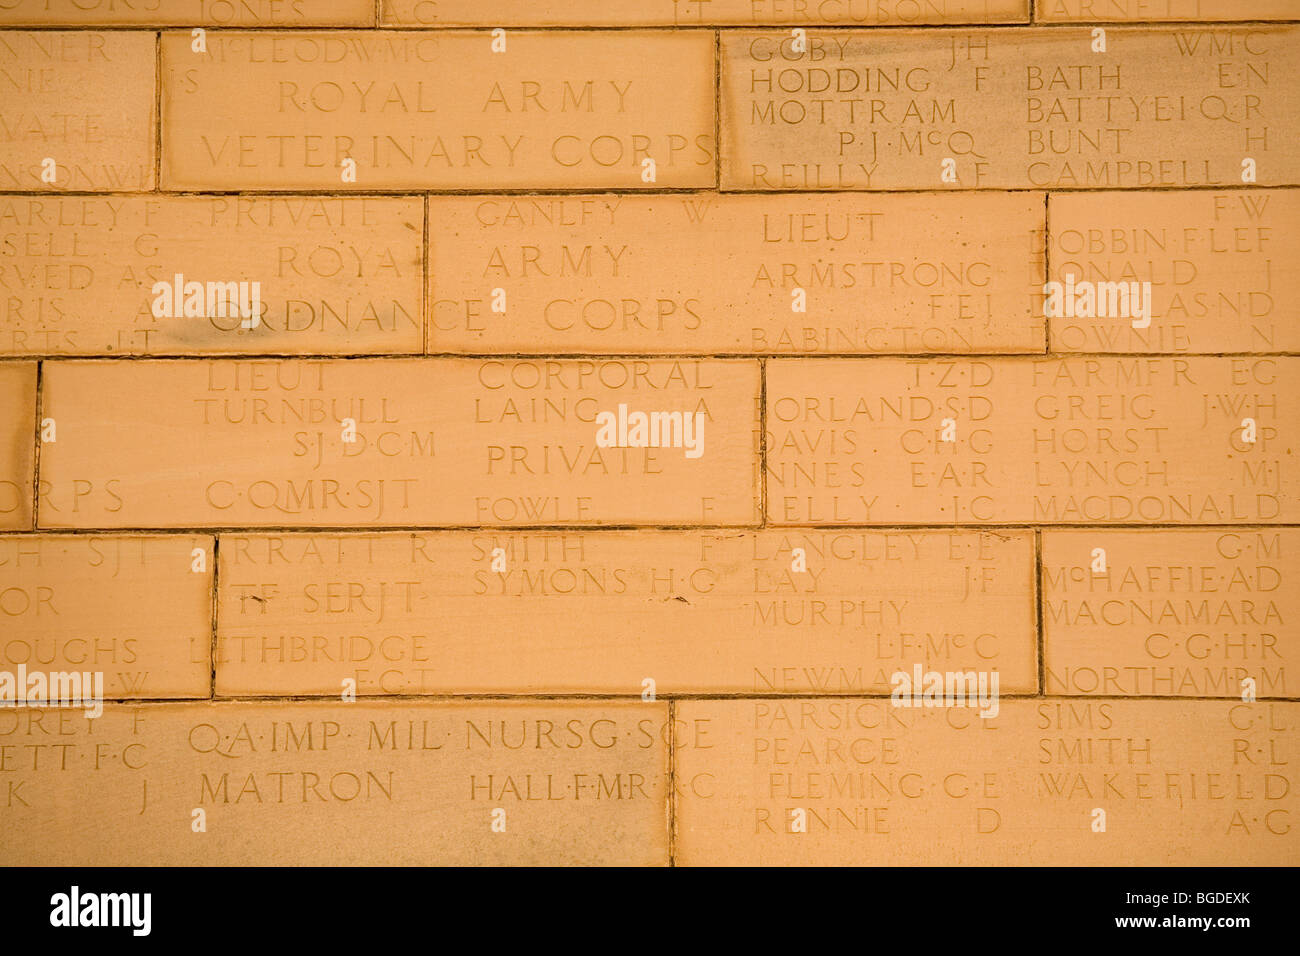 Names of casualties inscribed on India Gate in New Delhi, India. - Stock Image